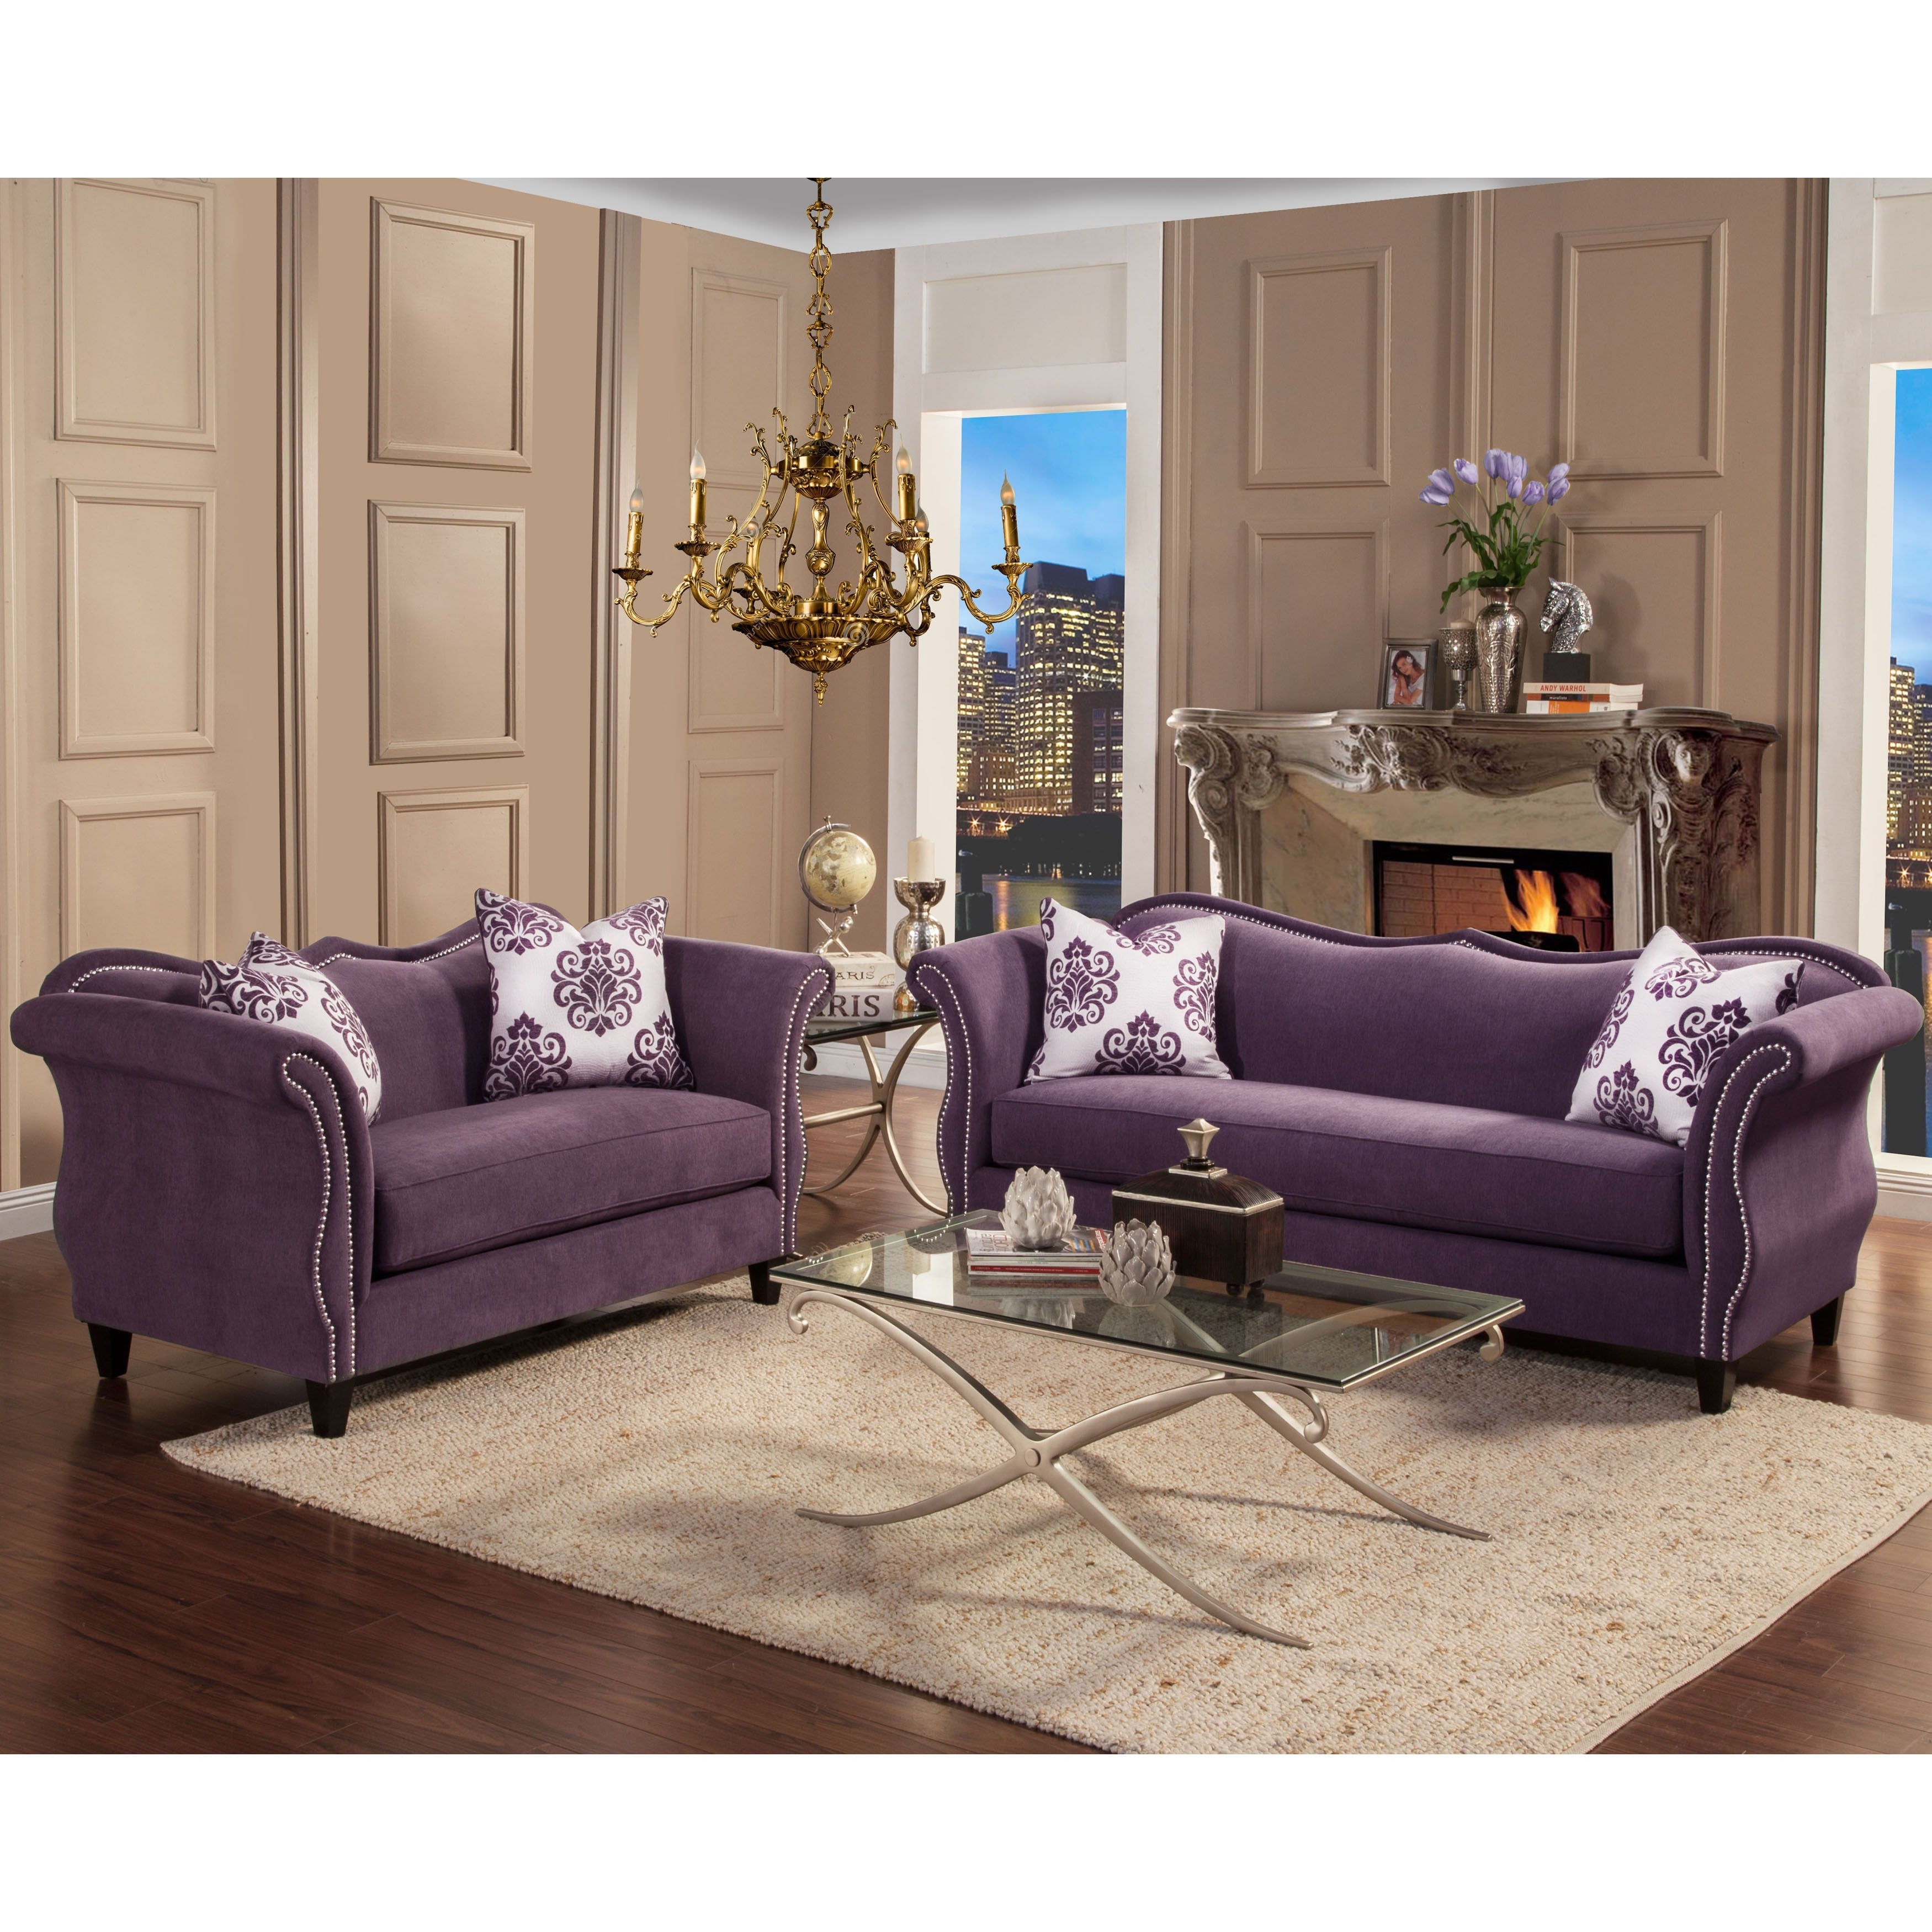 Furniture Of America Othello Loveseat Free Shipping Today  # Muebles Lady Lucky